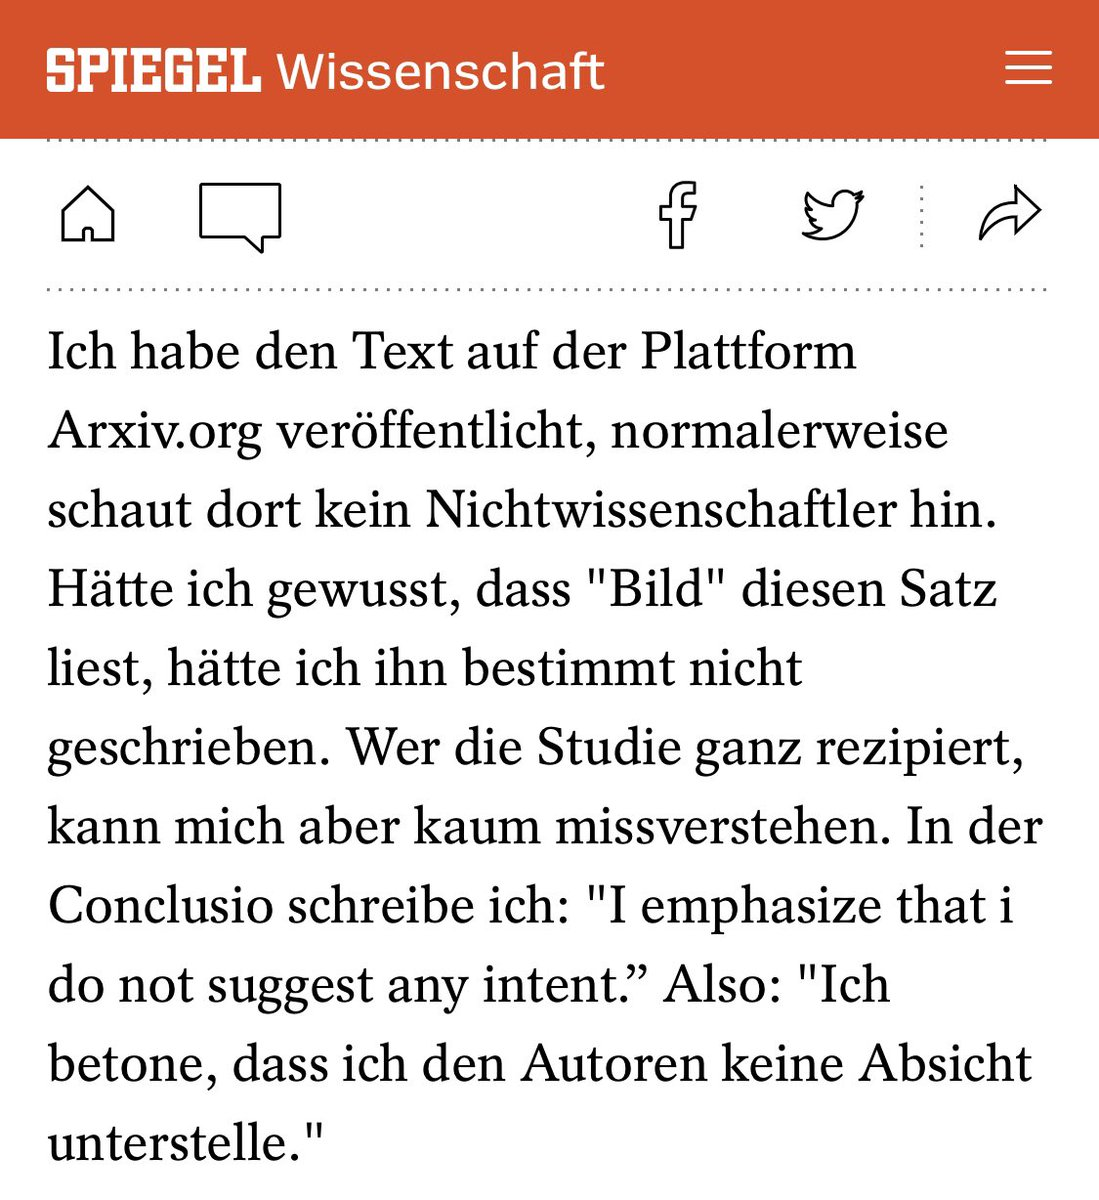 "Hihihi, er hat ""Journalismus"" gesagt... Smiley!"